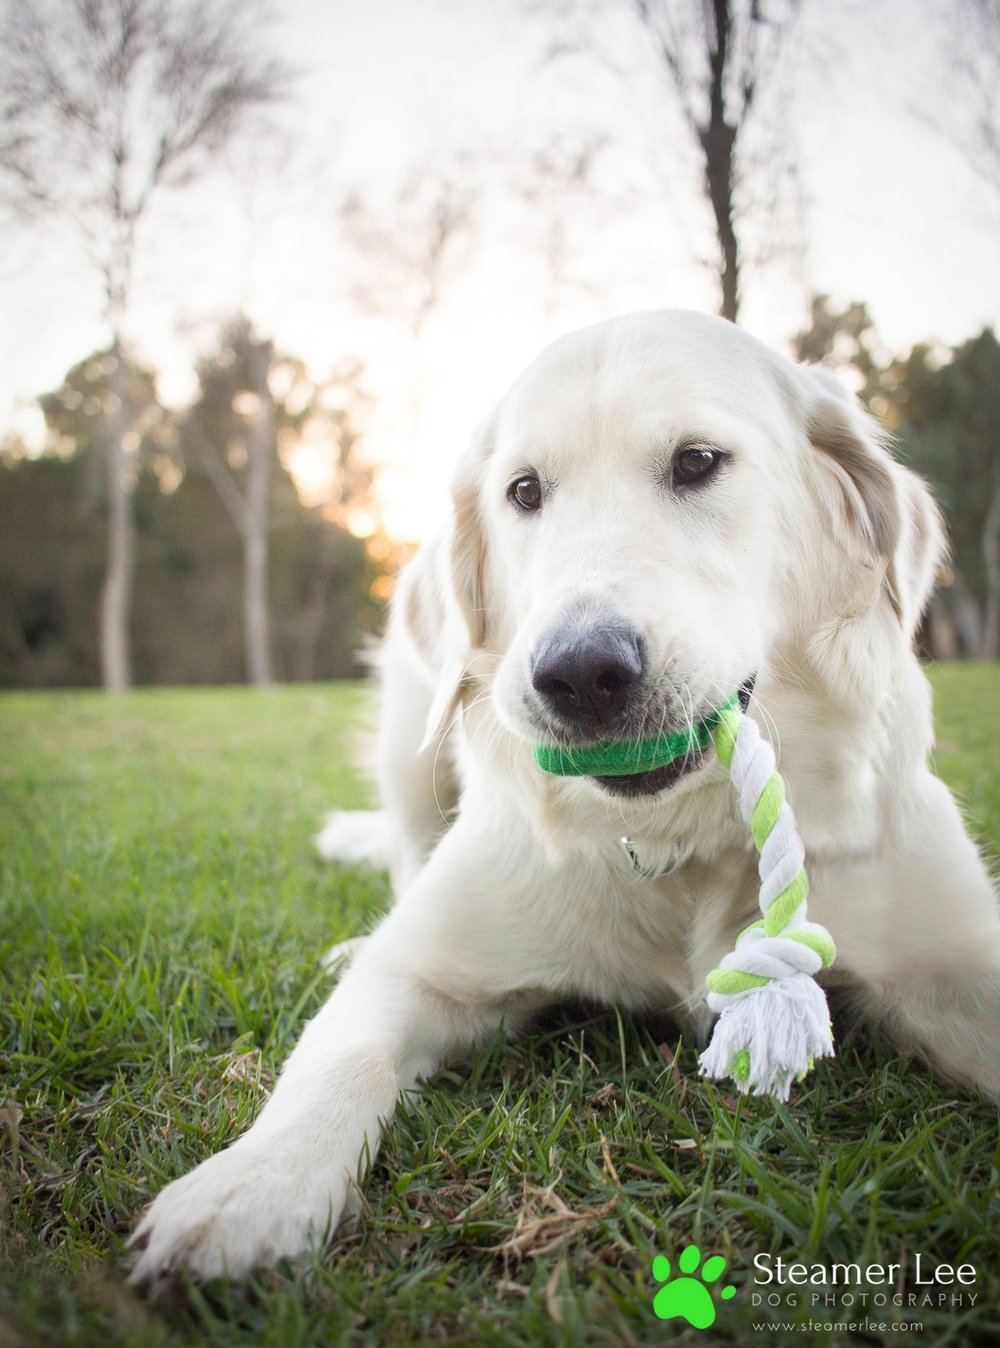 Steamer Lee Dog Photography - Ava White Golden Retriever - 10